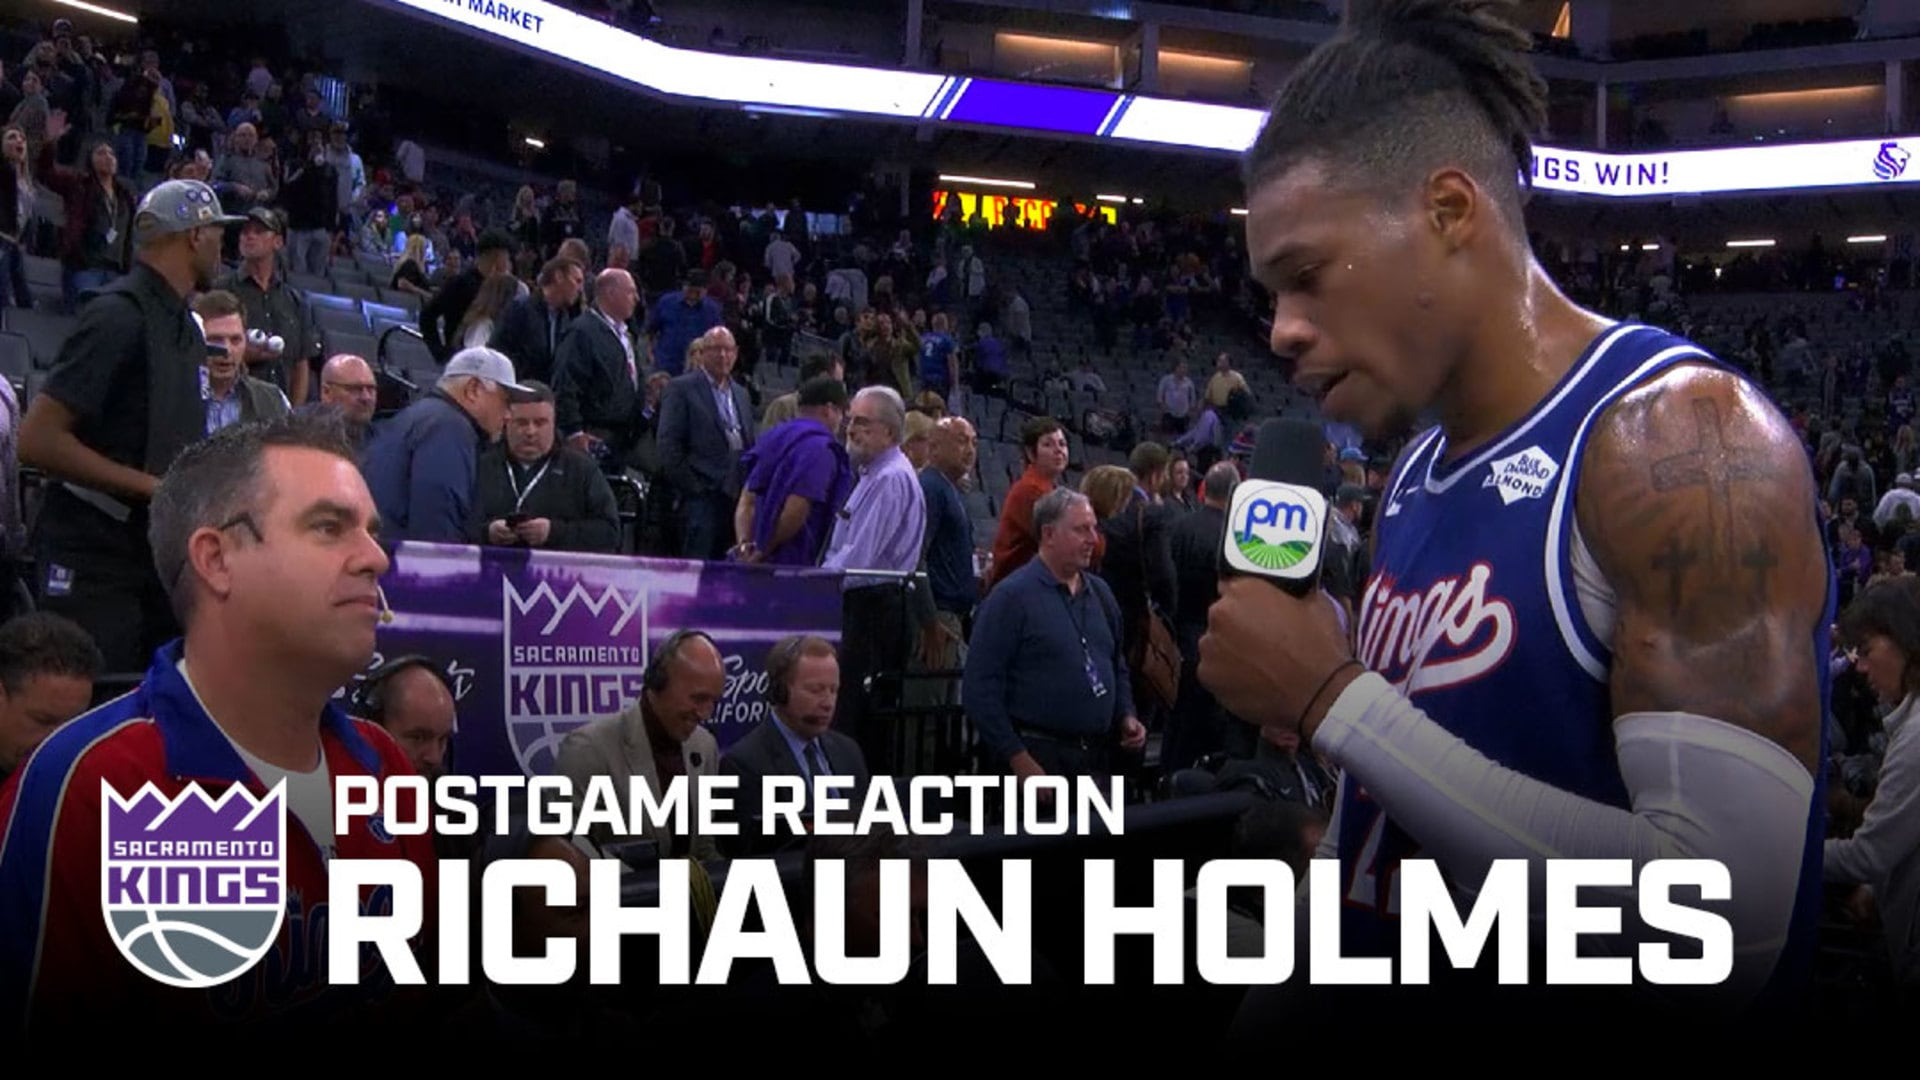 'These Fans Bring It Every Night' | Richaun Holmes Postgame Reaction 11.19.19